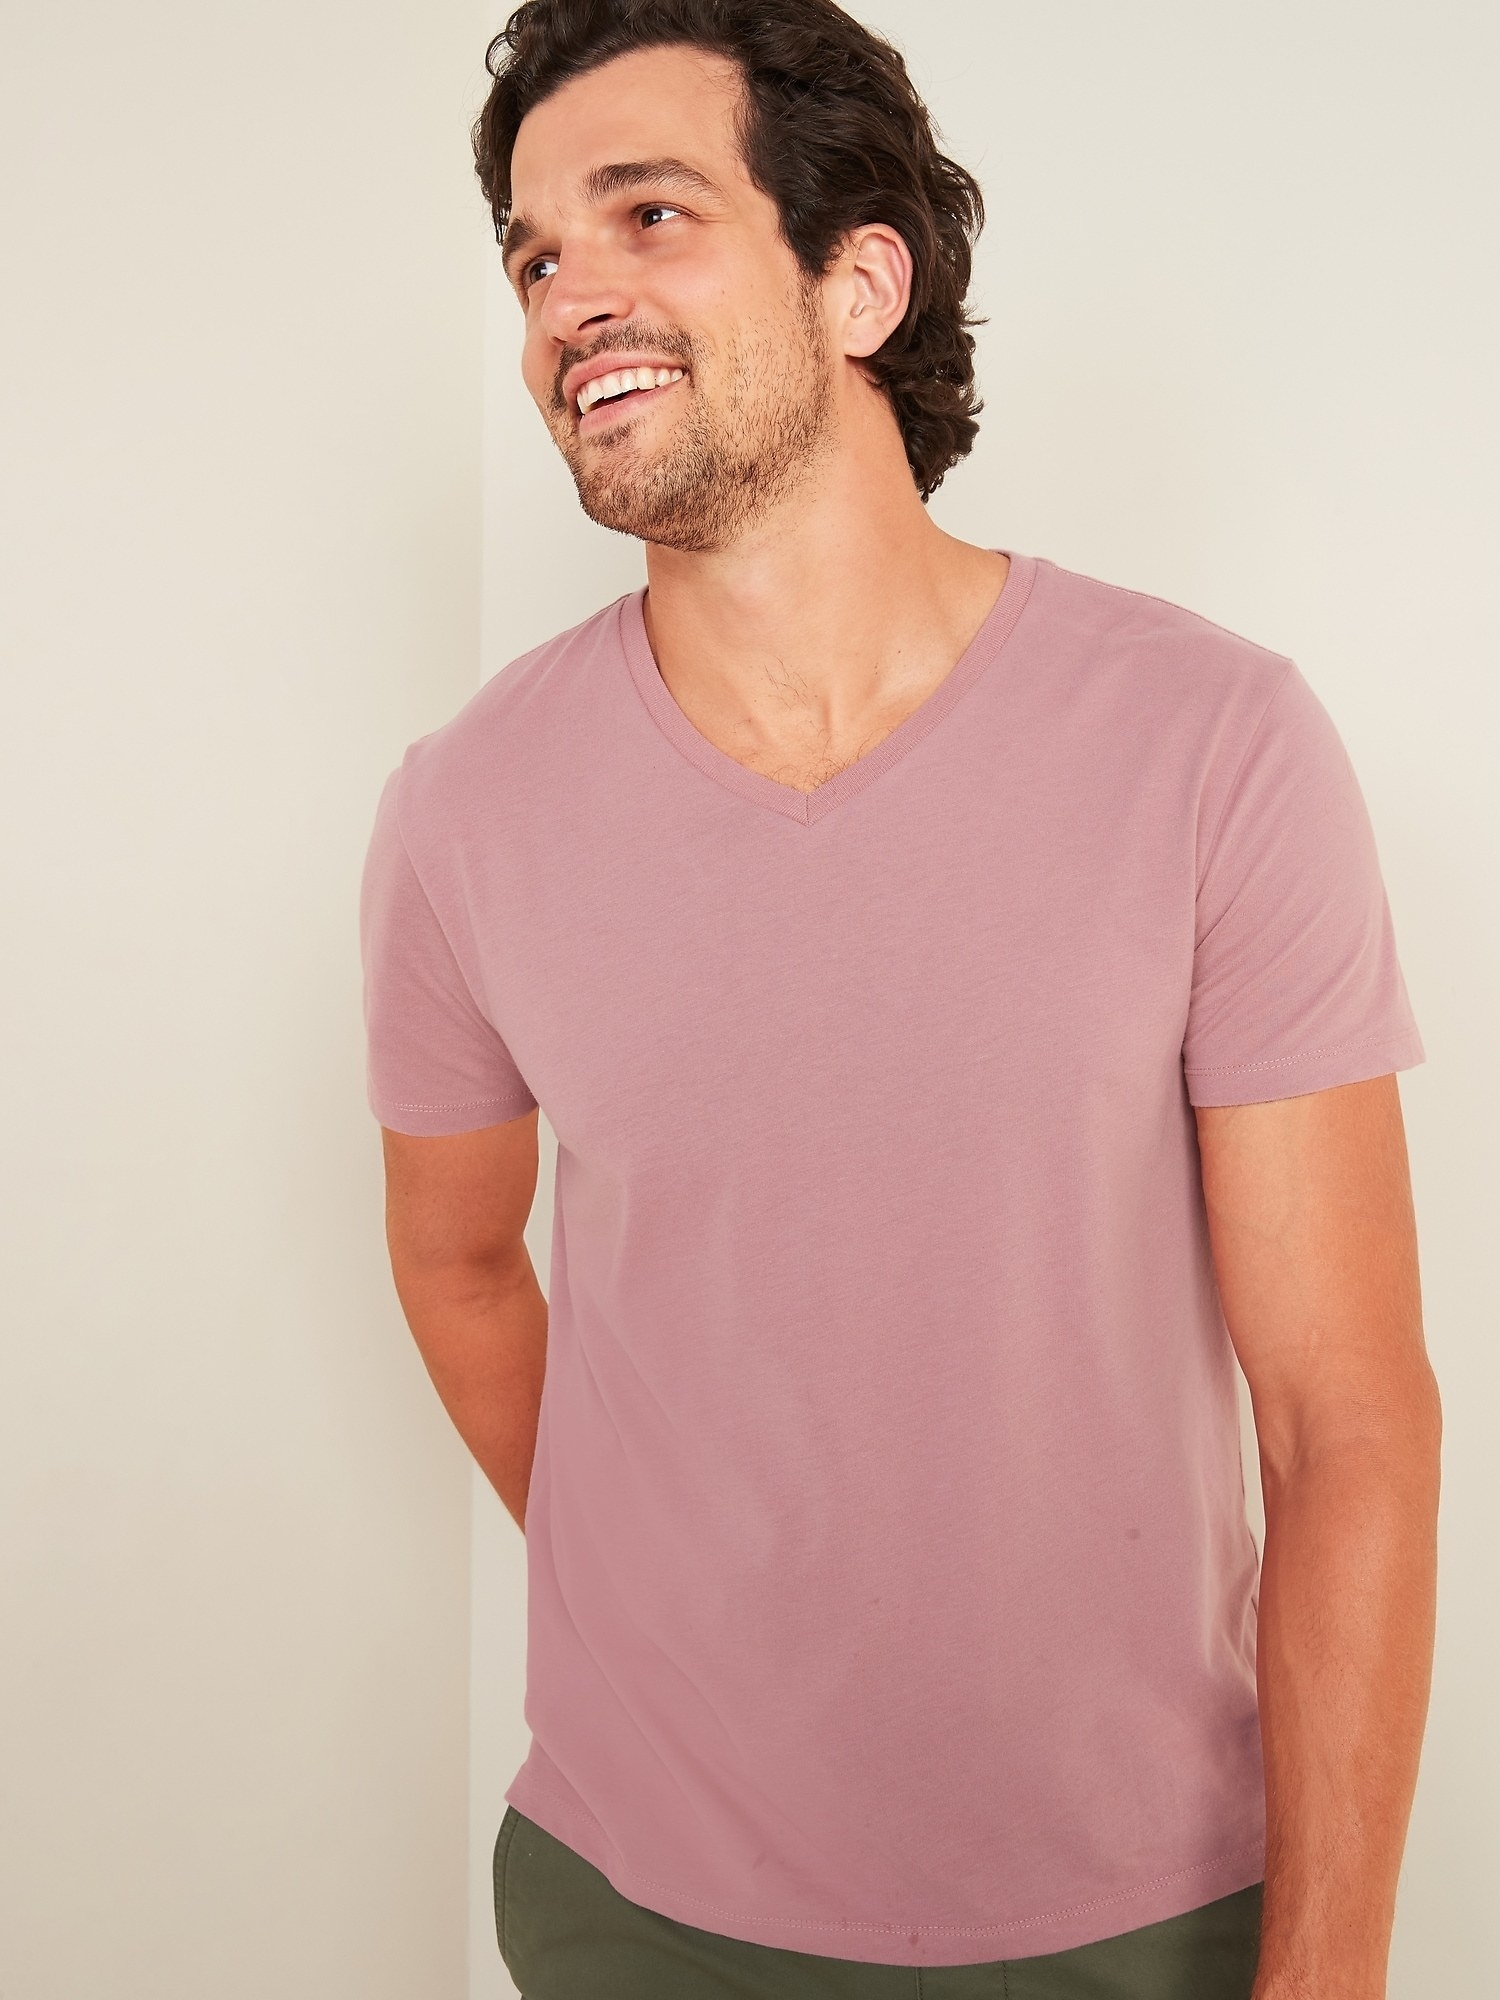 Model wearing the tee in dusty birch color with green pants